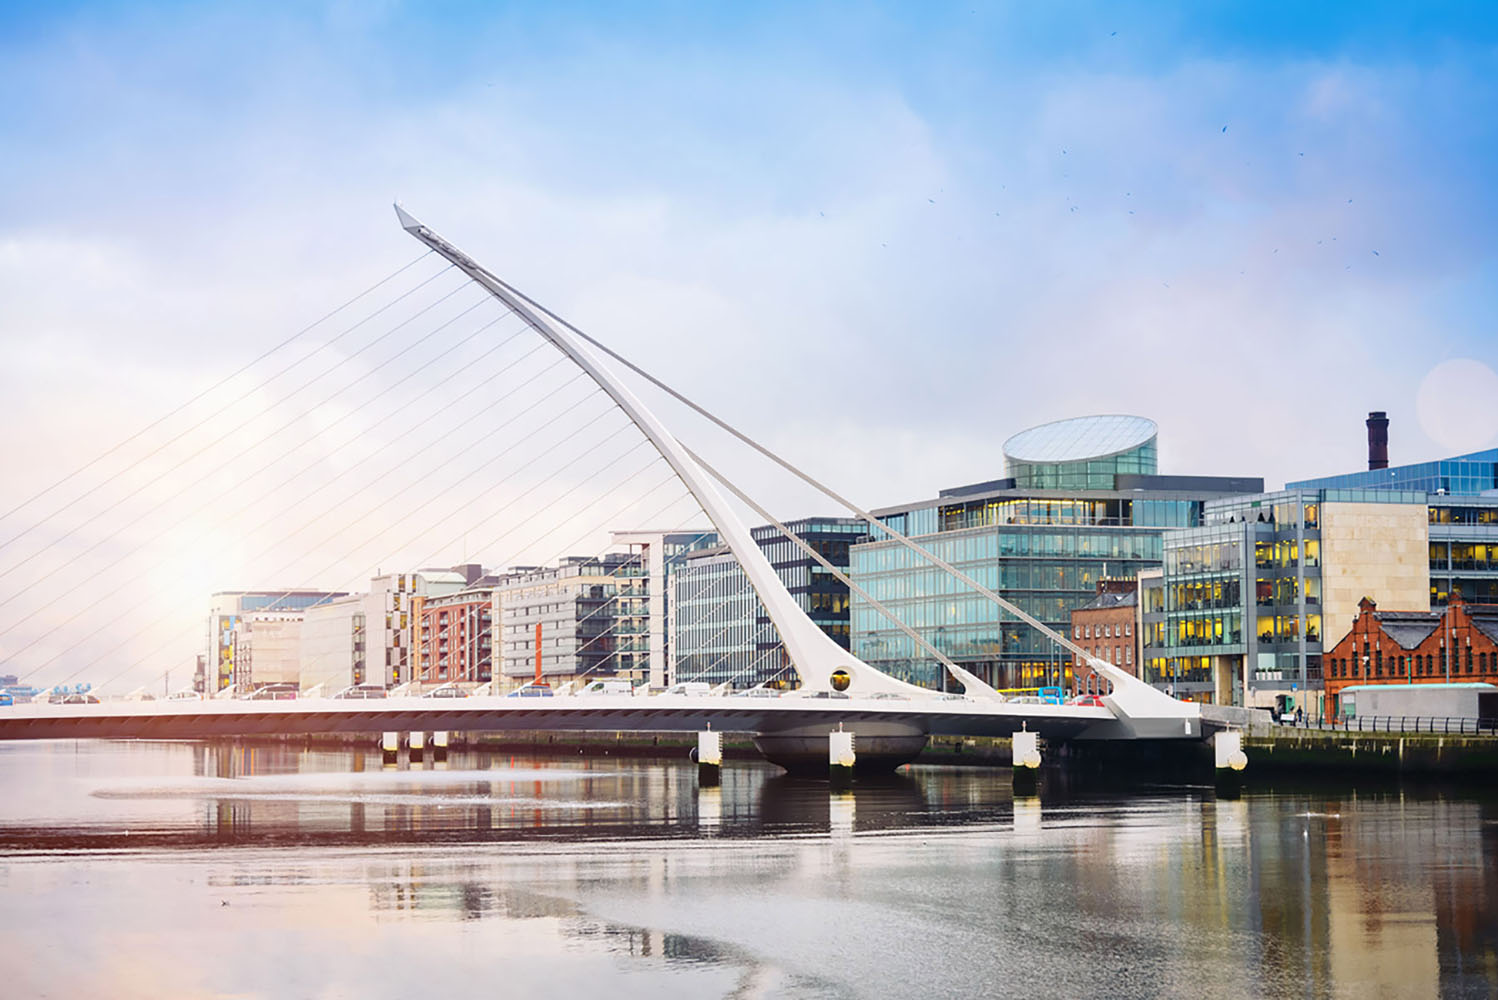 Samuel Beckett Bridge in Dublin has a harp-inspired shape.